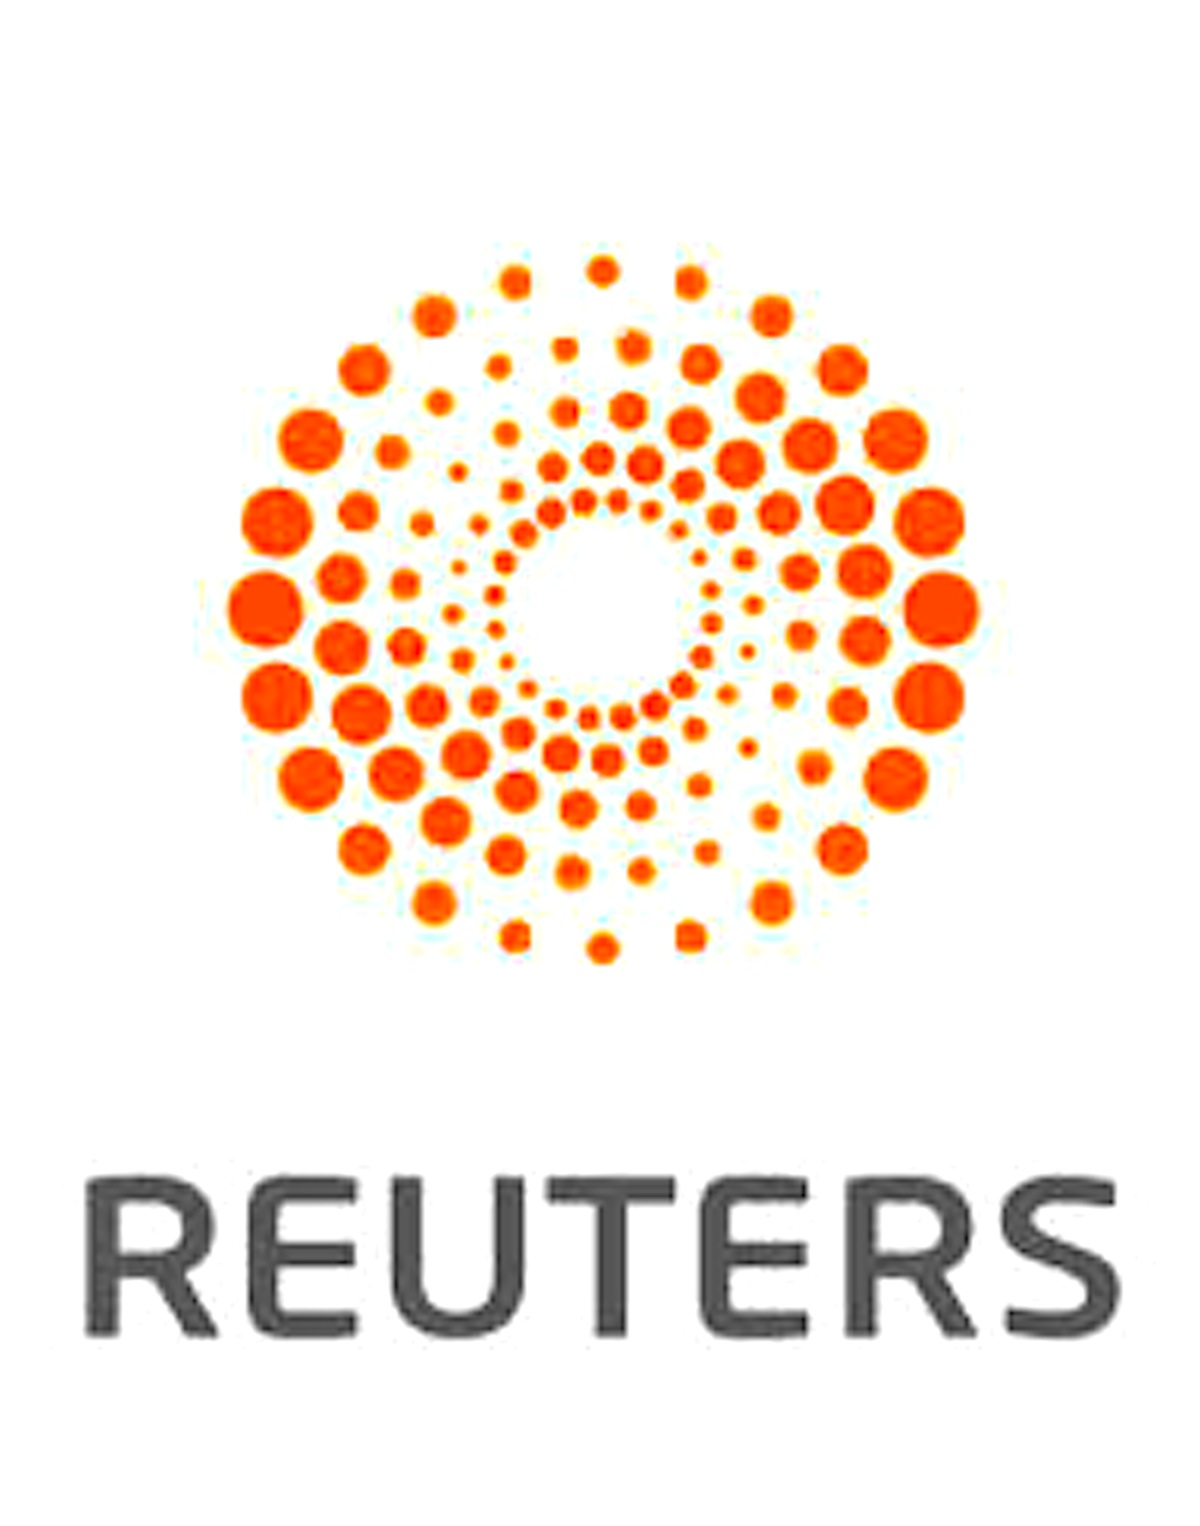 REUTERS NEWS SOURCE